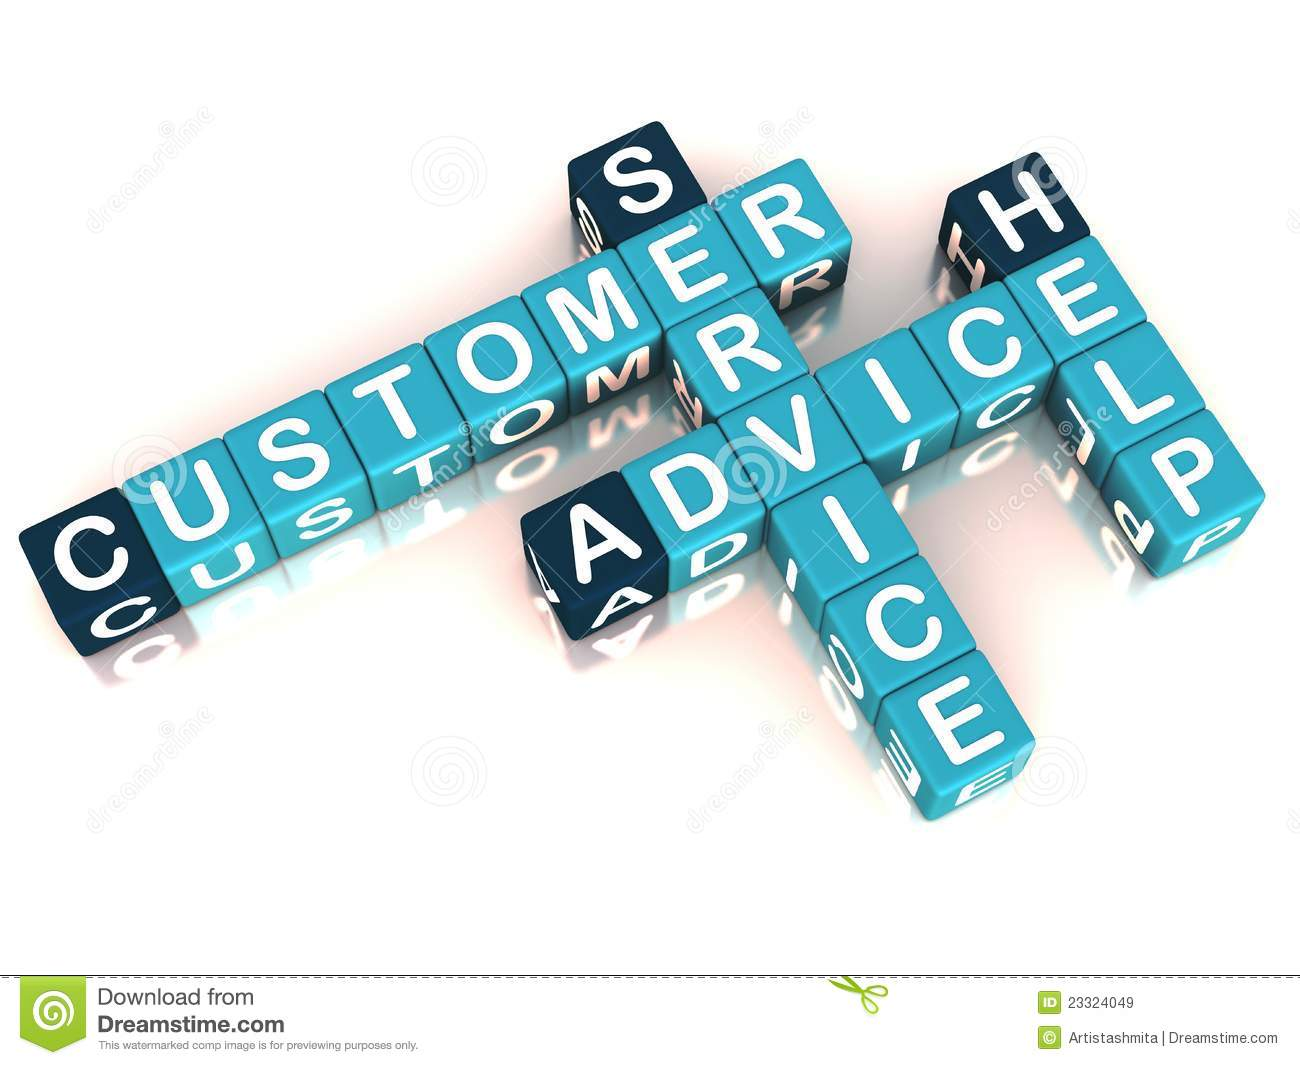 Clipart customer service clipart freeuse library Free customer service clipart images - ClipartFest clipart freeuse library